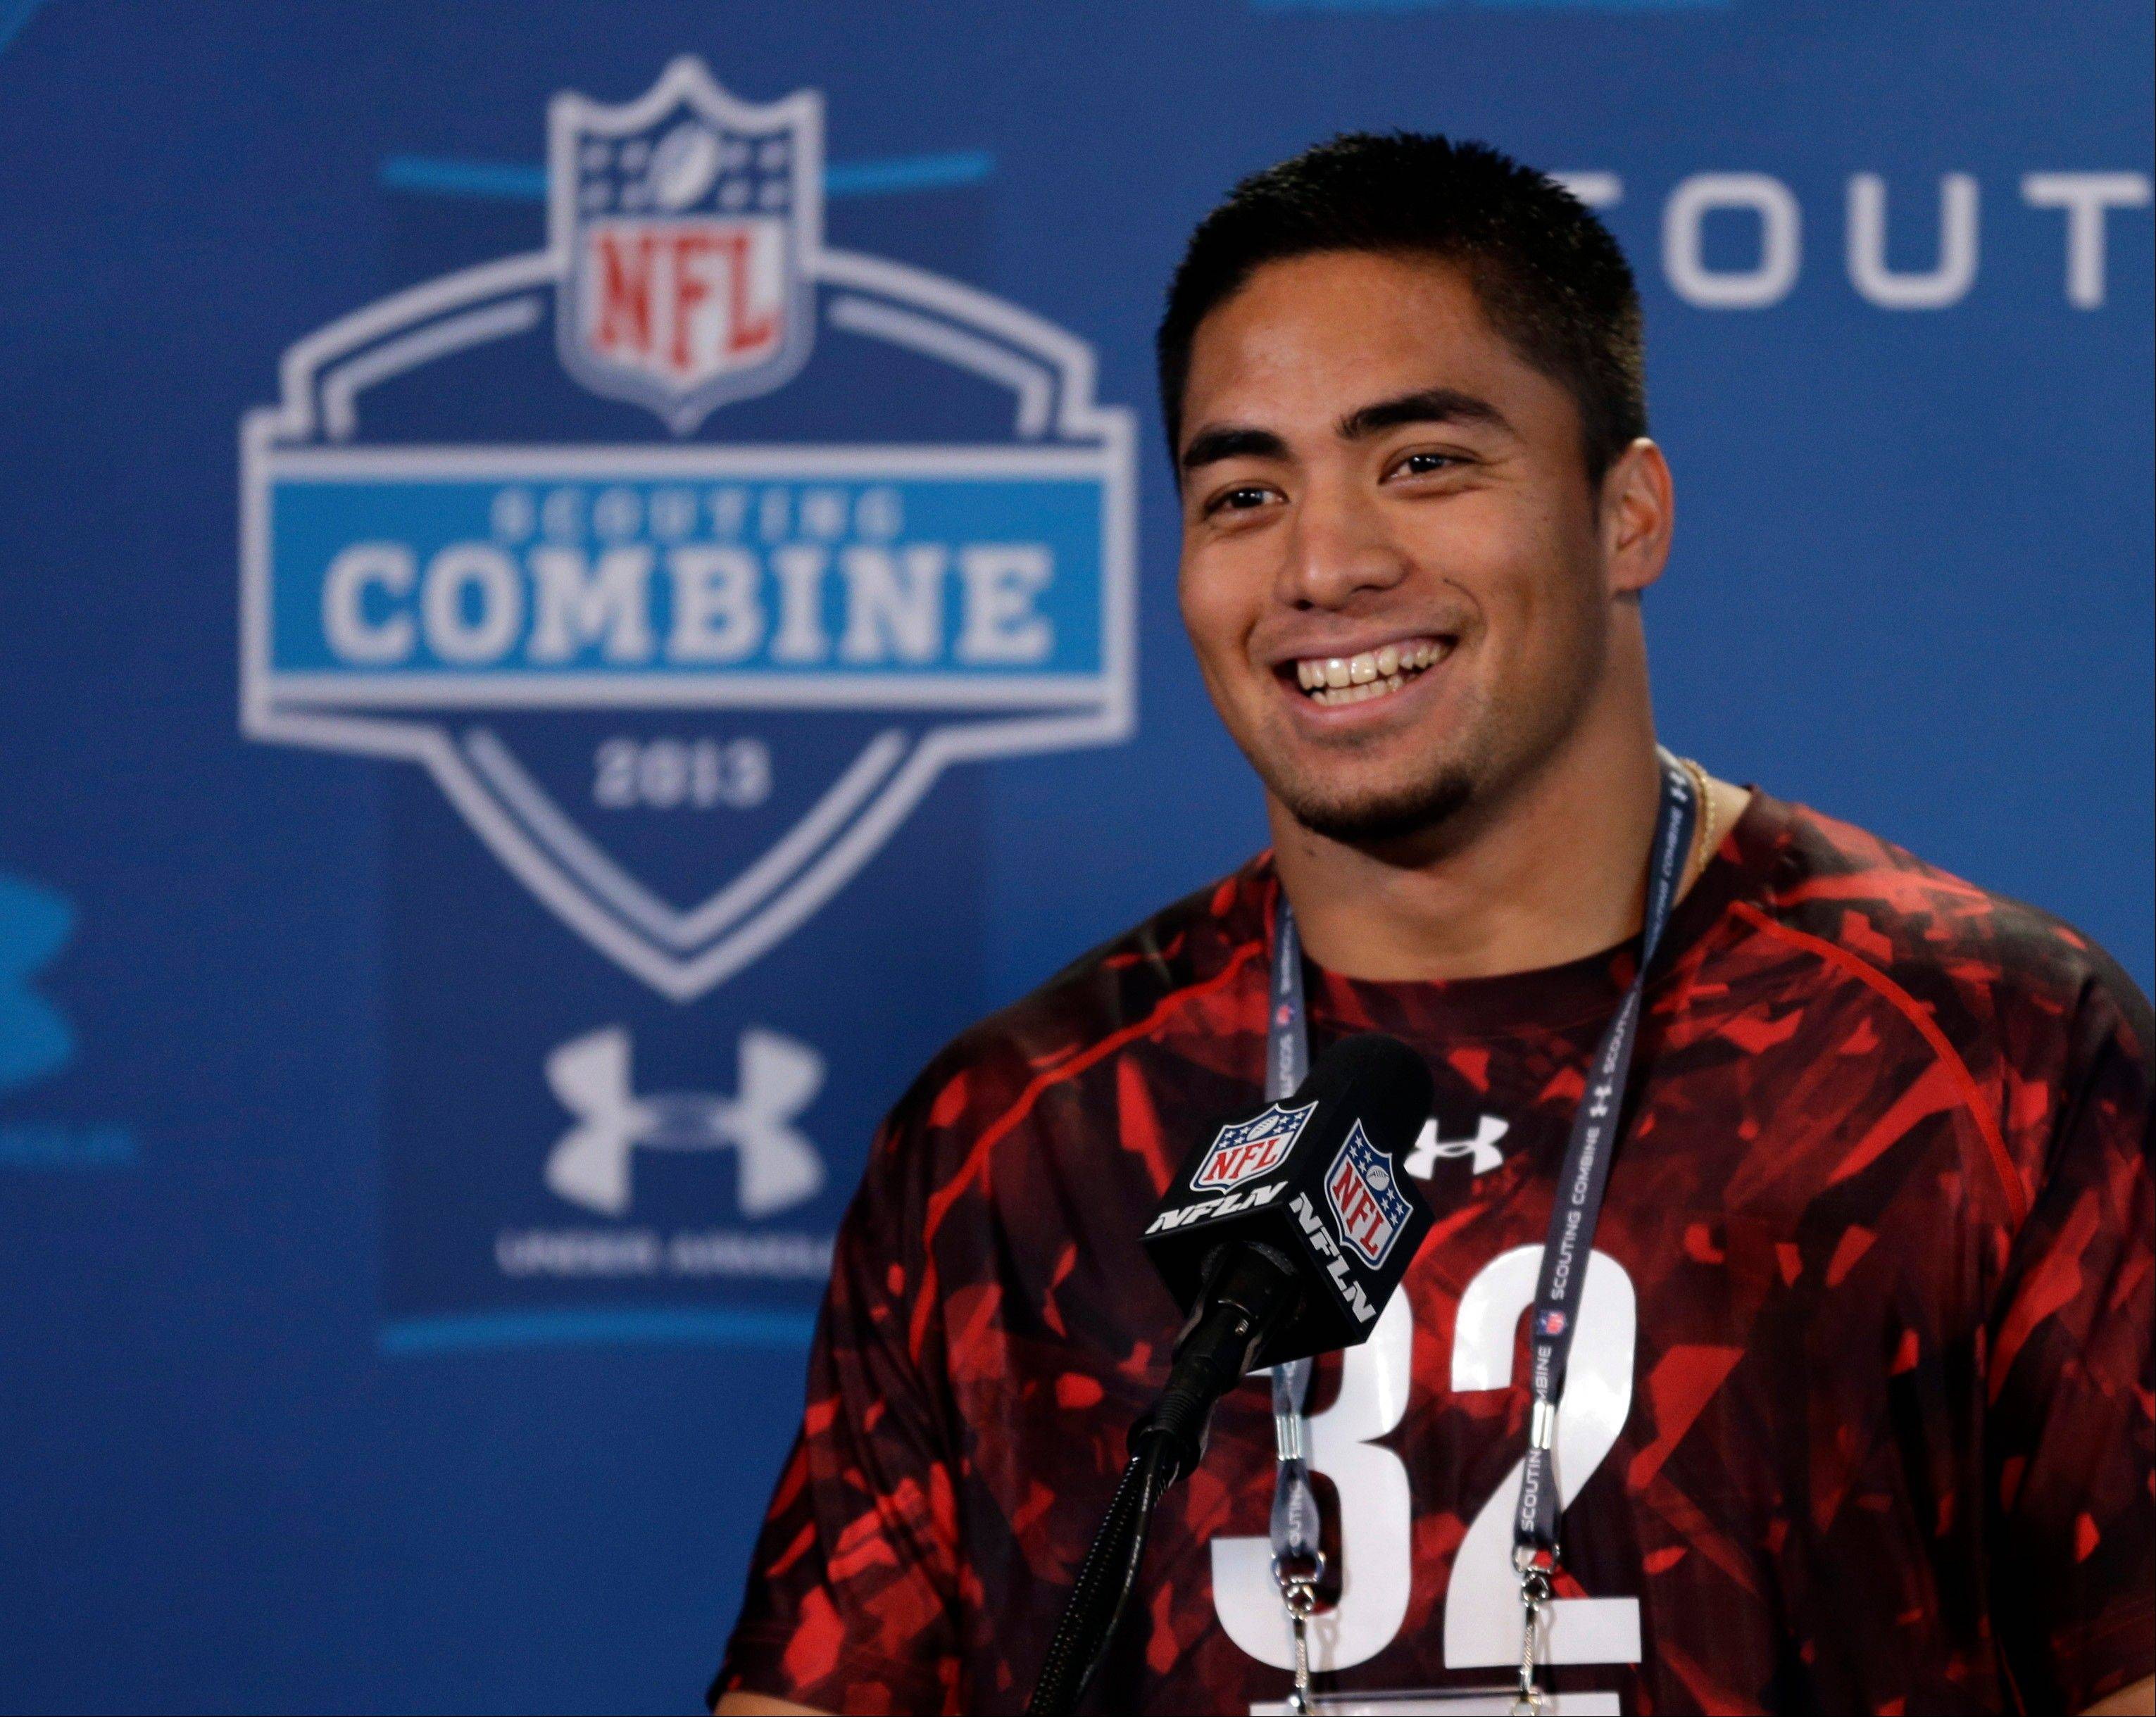 Notre Dame linebacker Manti Te'O answers a question during at the NFL football scouting combine in Indianapolis.